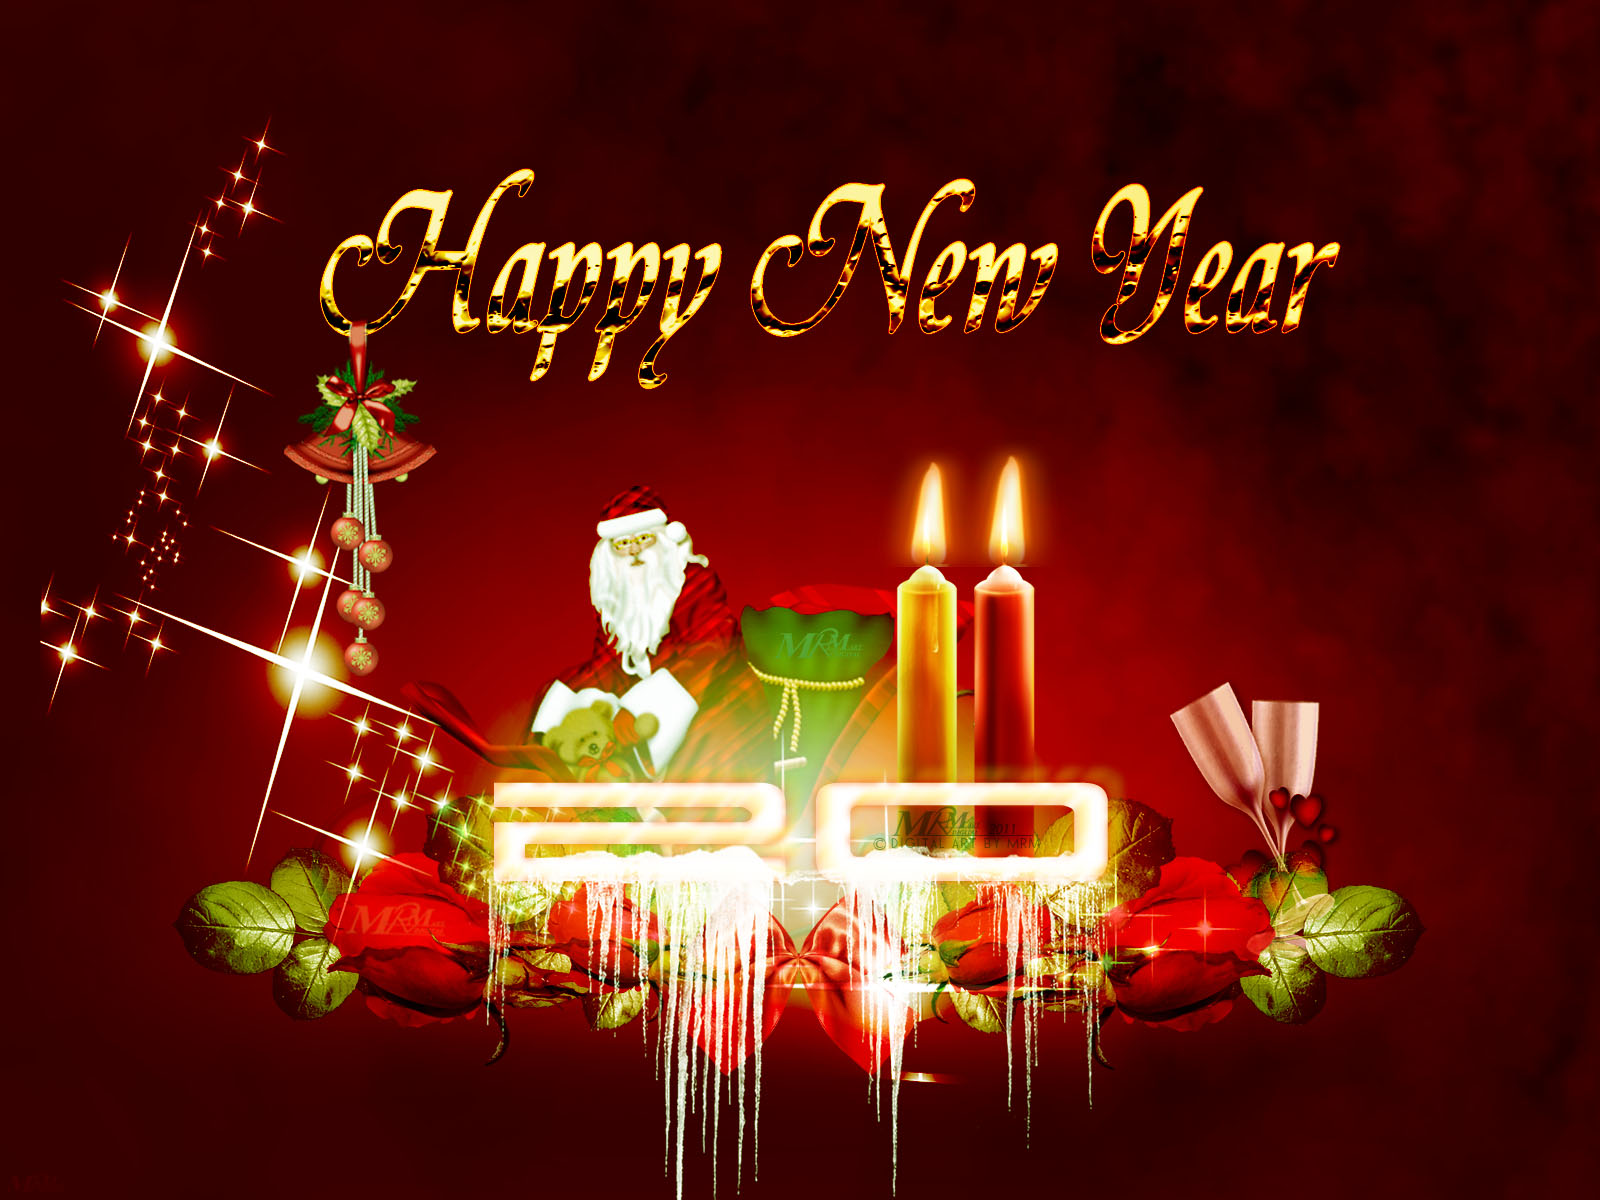 New Year 2016 Wallpapers Wishes Happy New Year Hd Greeting Cards